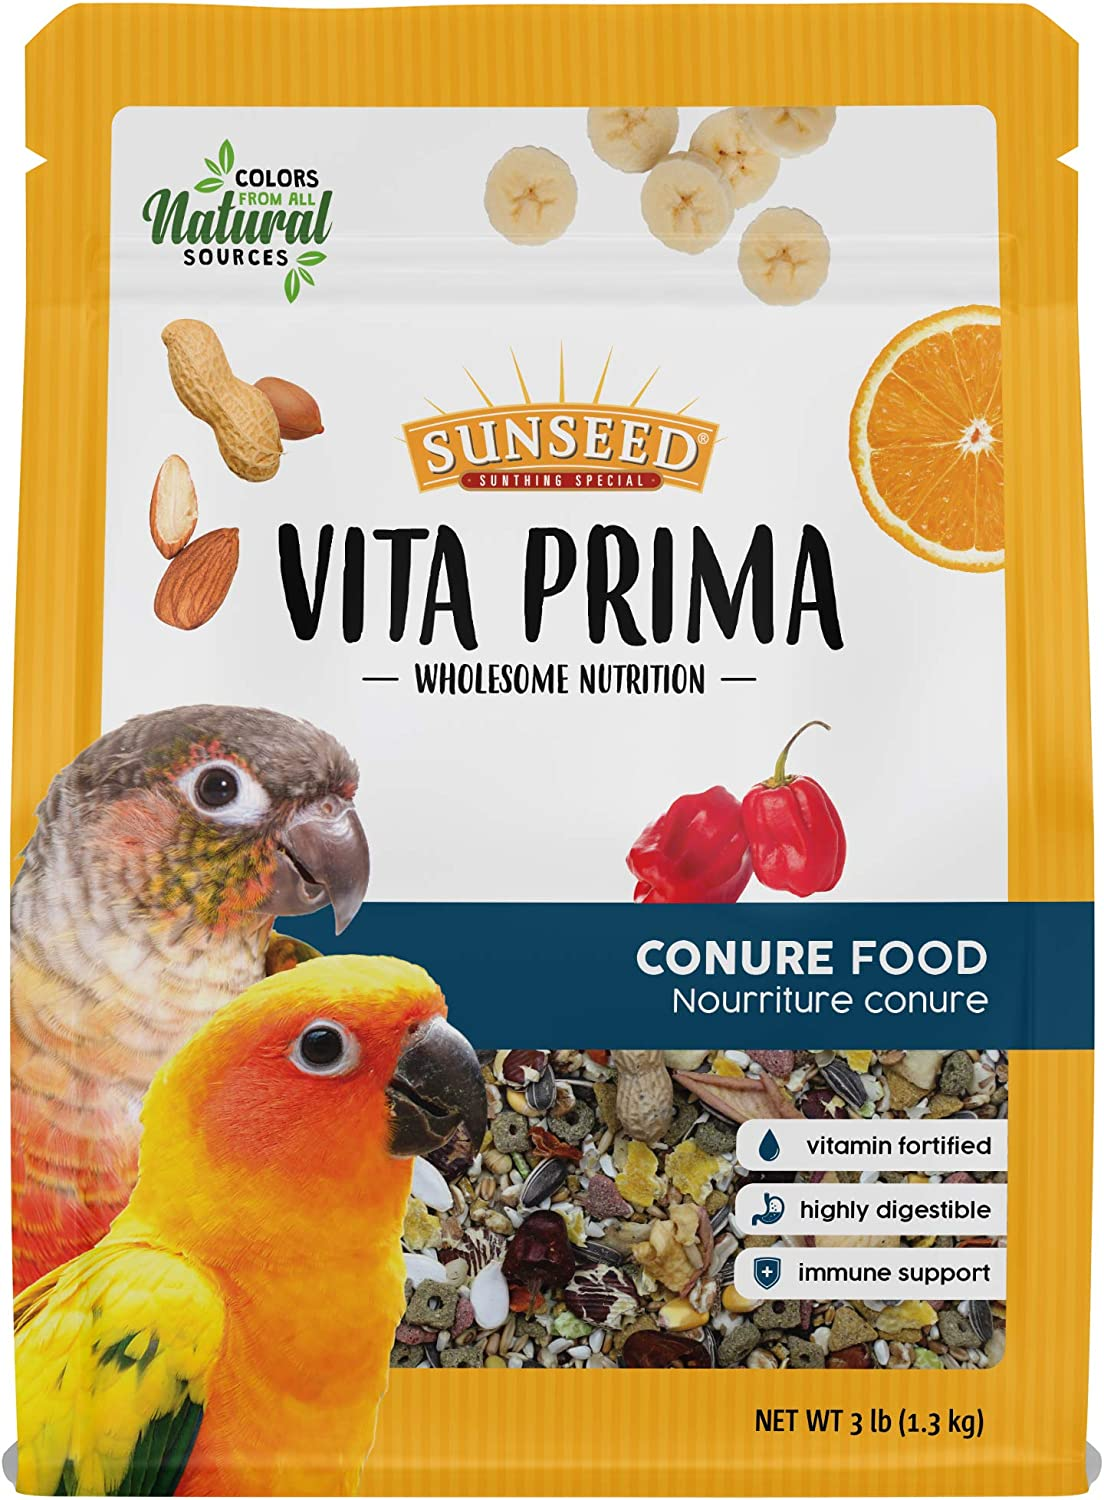 Sunseed Vita Prima Wholesome Nutrition Conure Food, 3 LBS